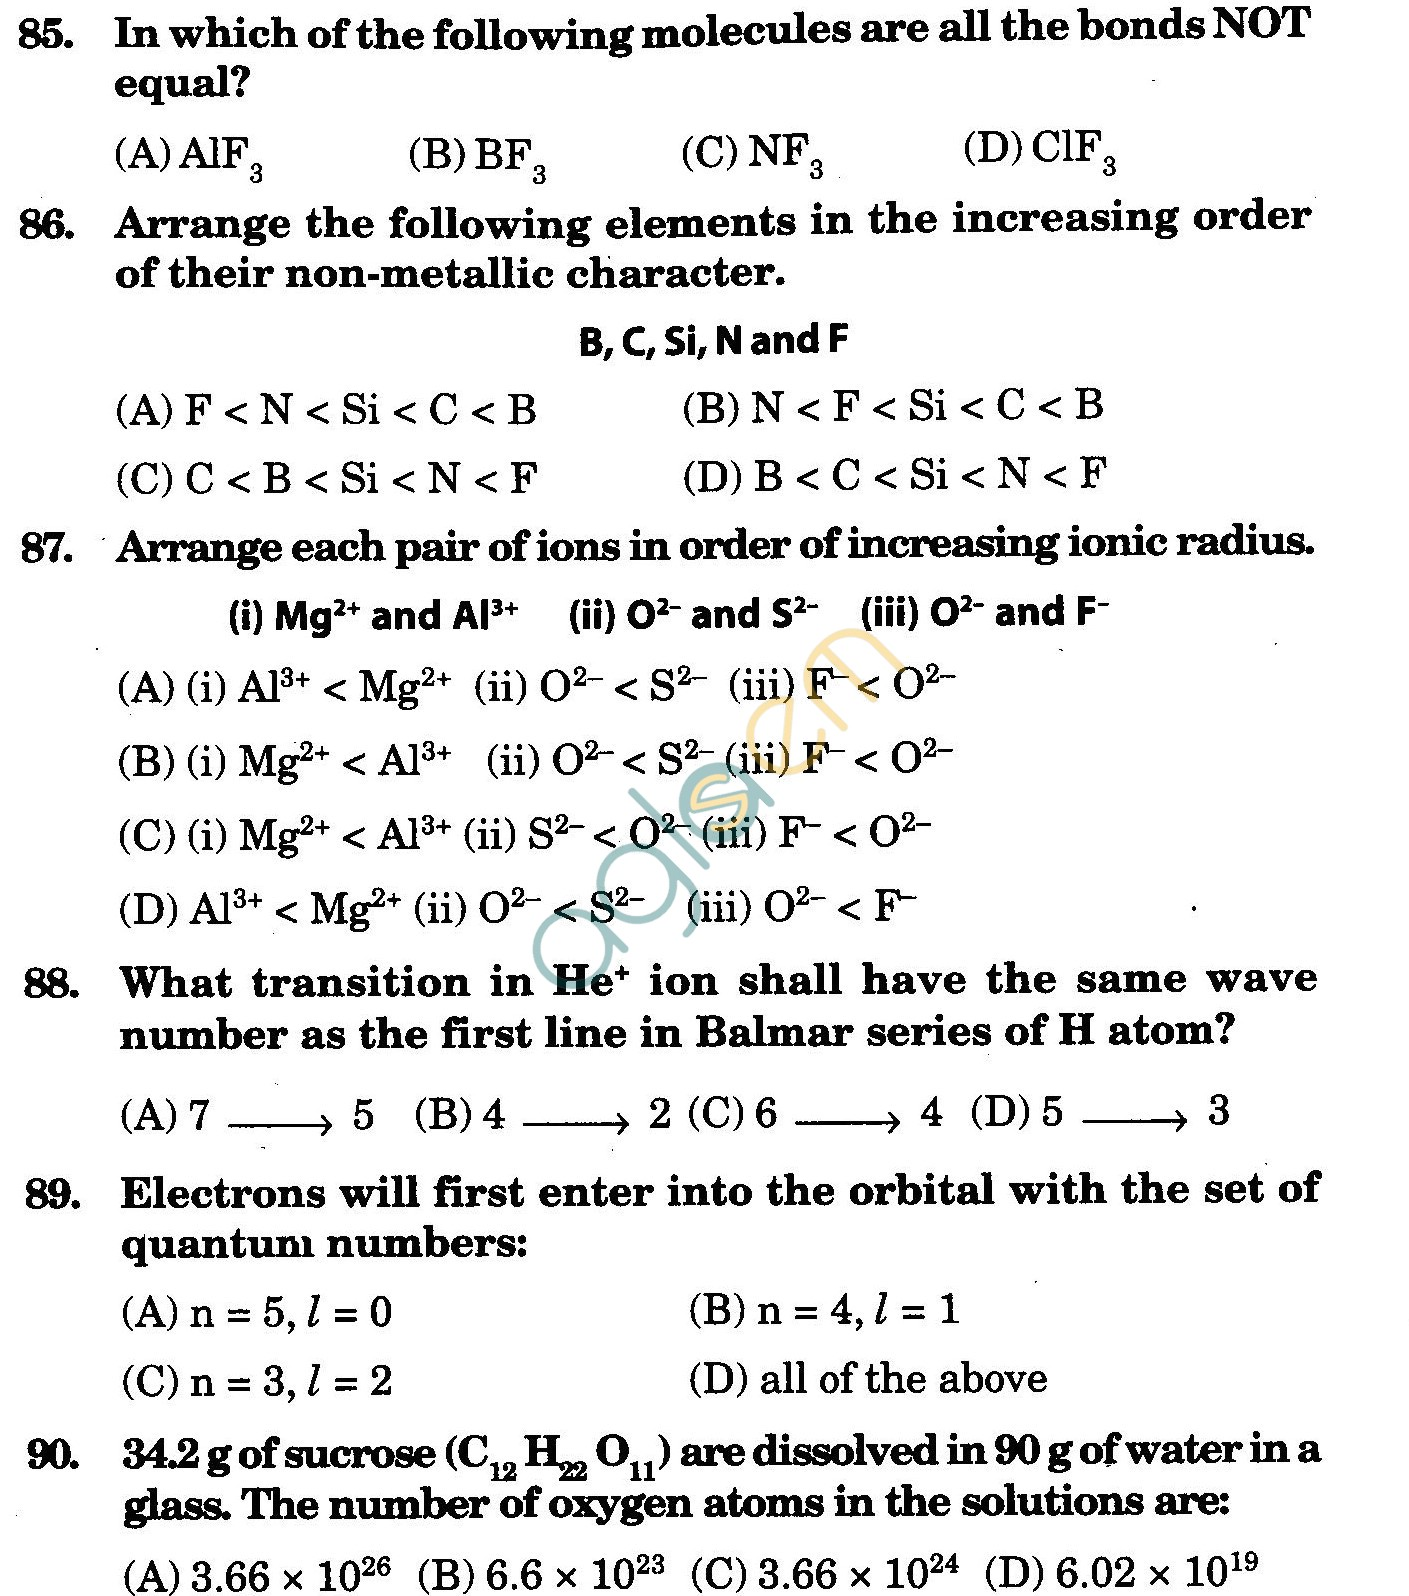 NSTSE 2009 Class XI PCB Question Paper with Answers - Chemistry